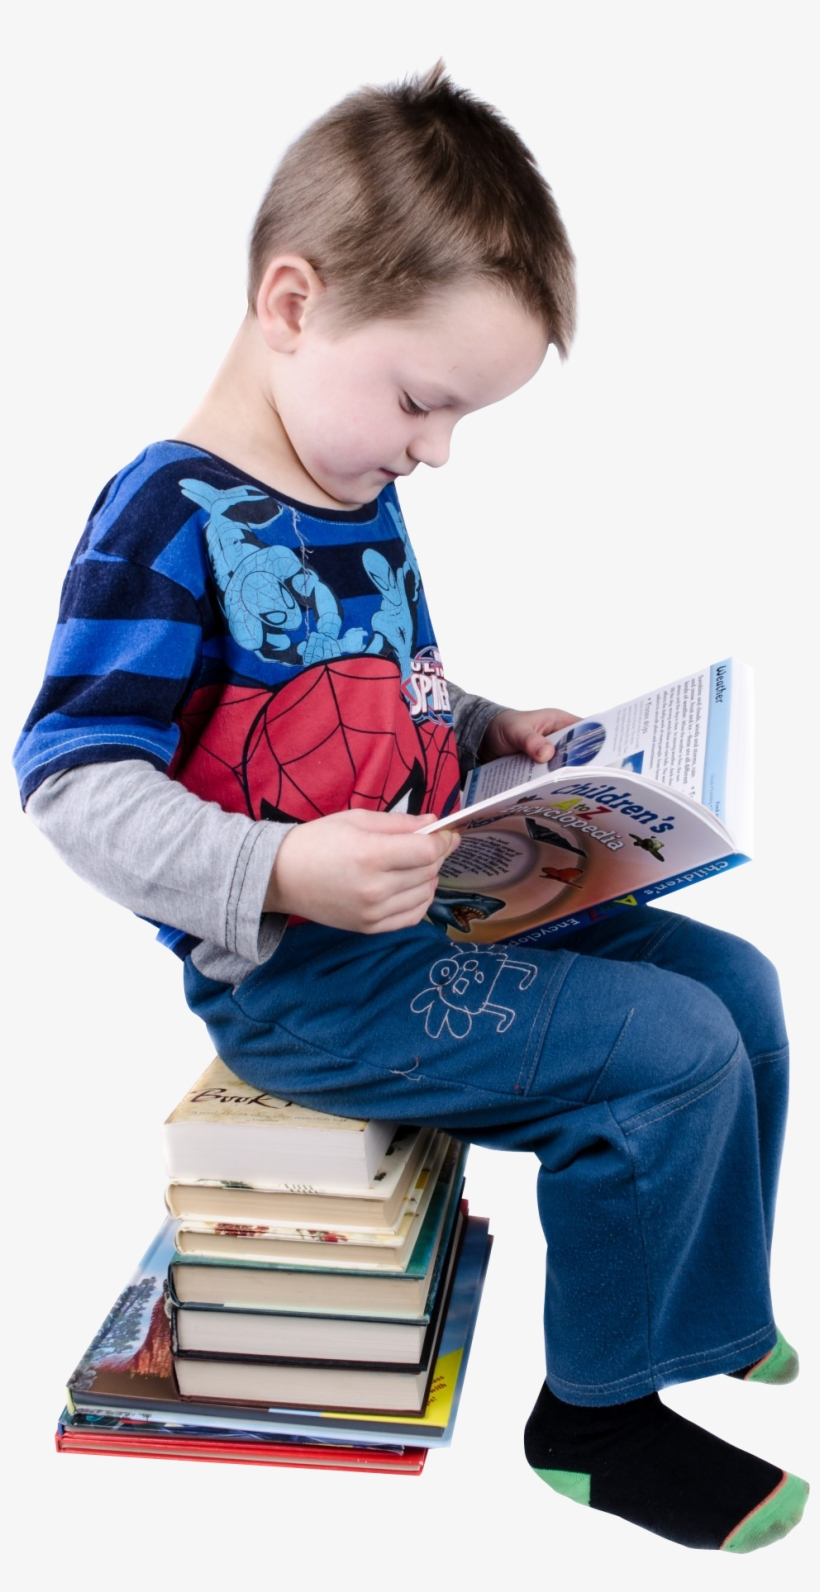 Boy Reading Books Png Image - Reading Books Png, transparent png #944168